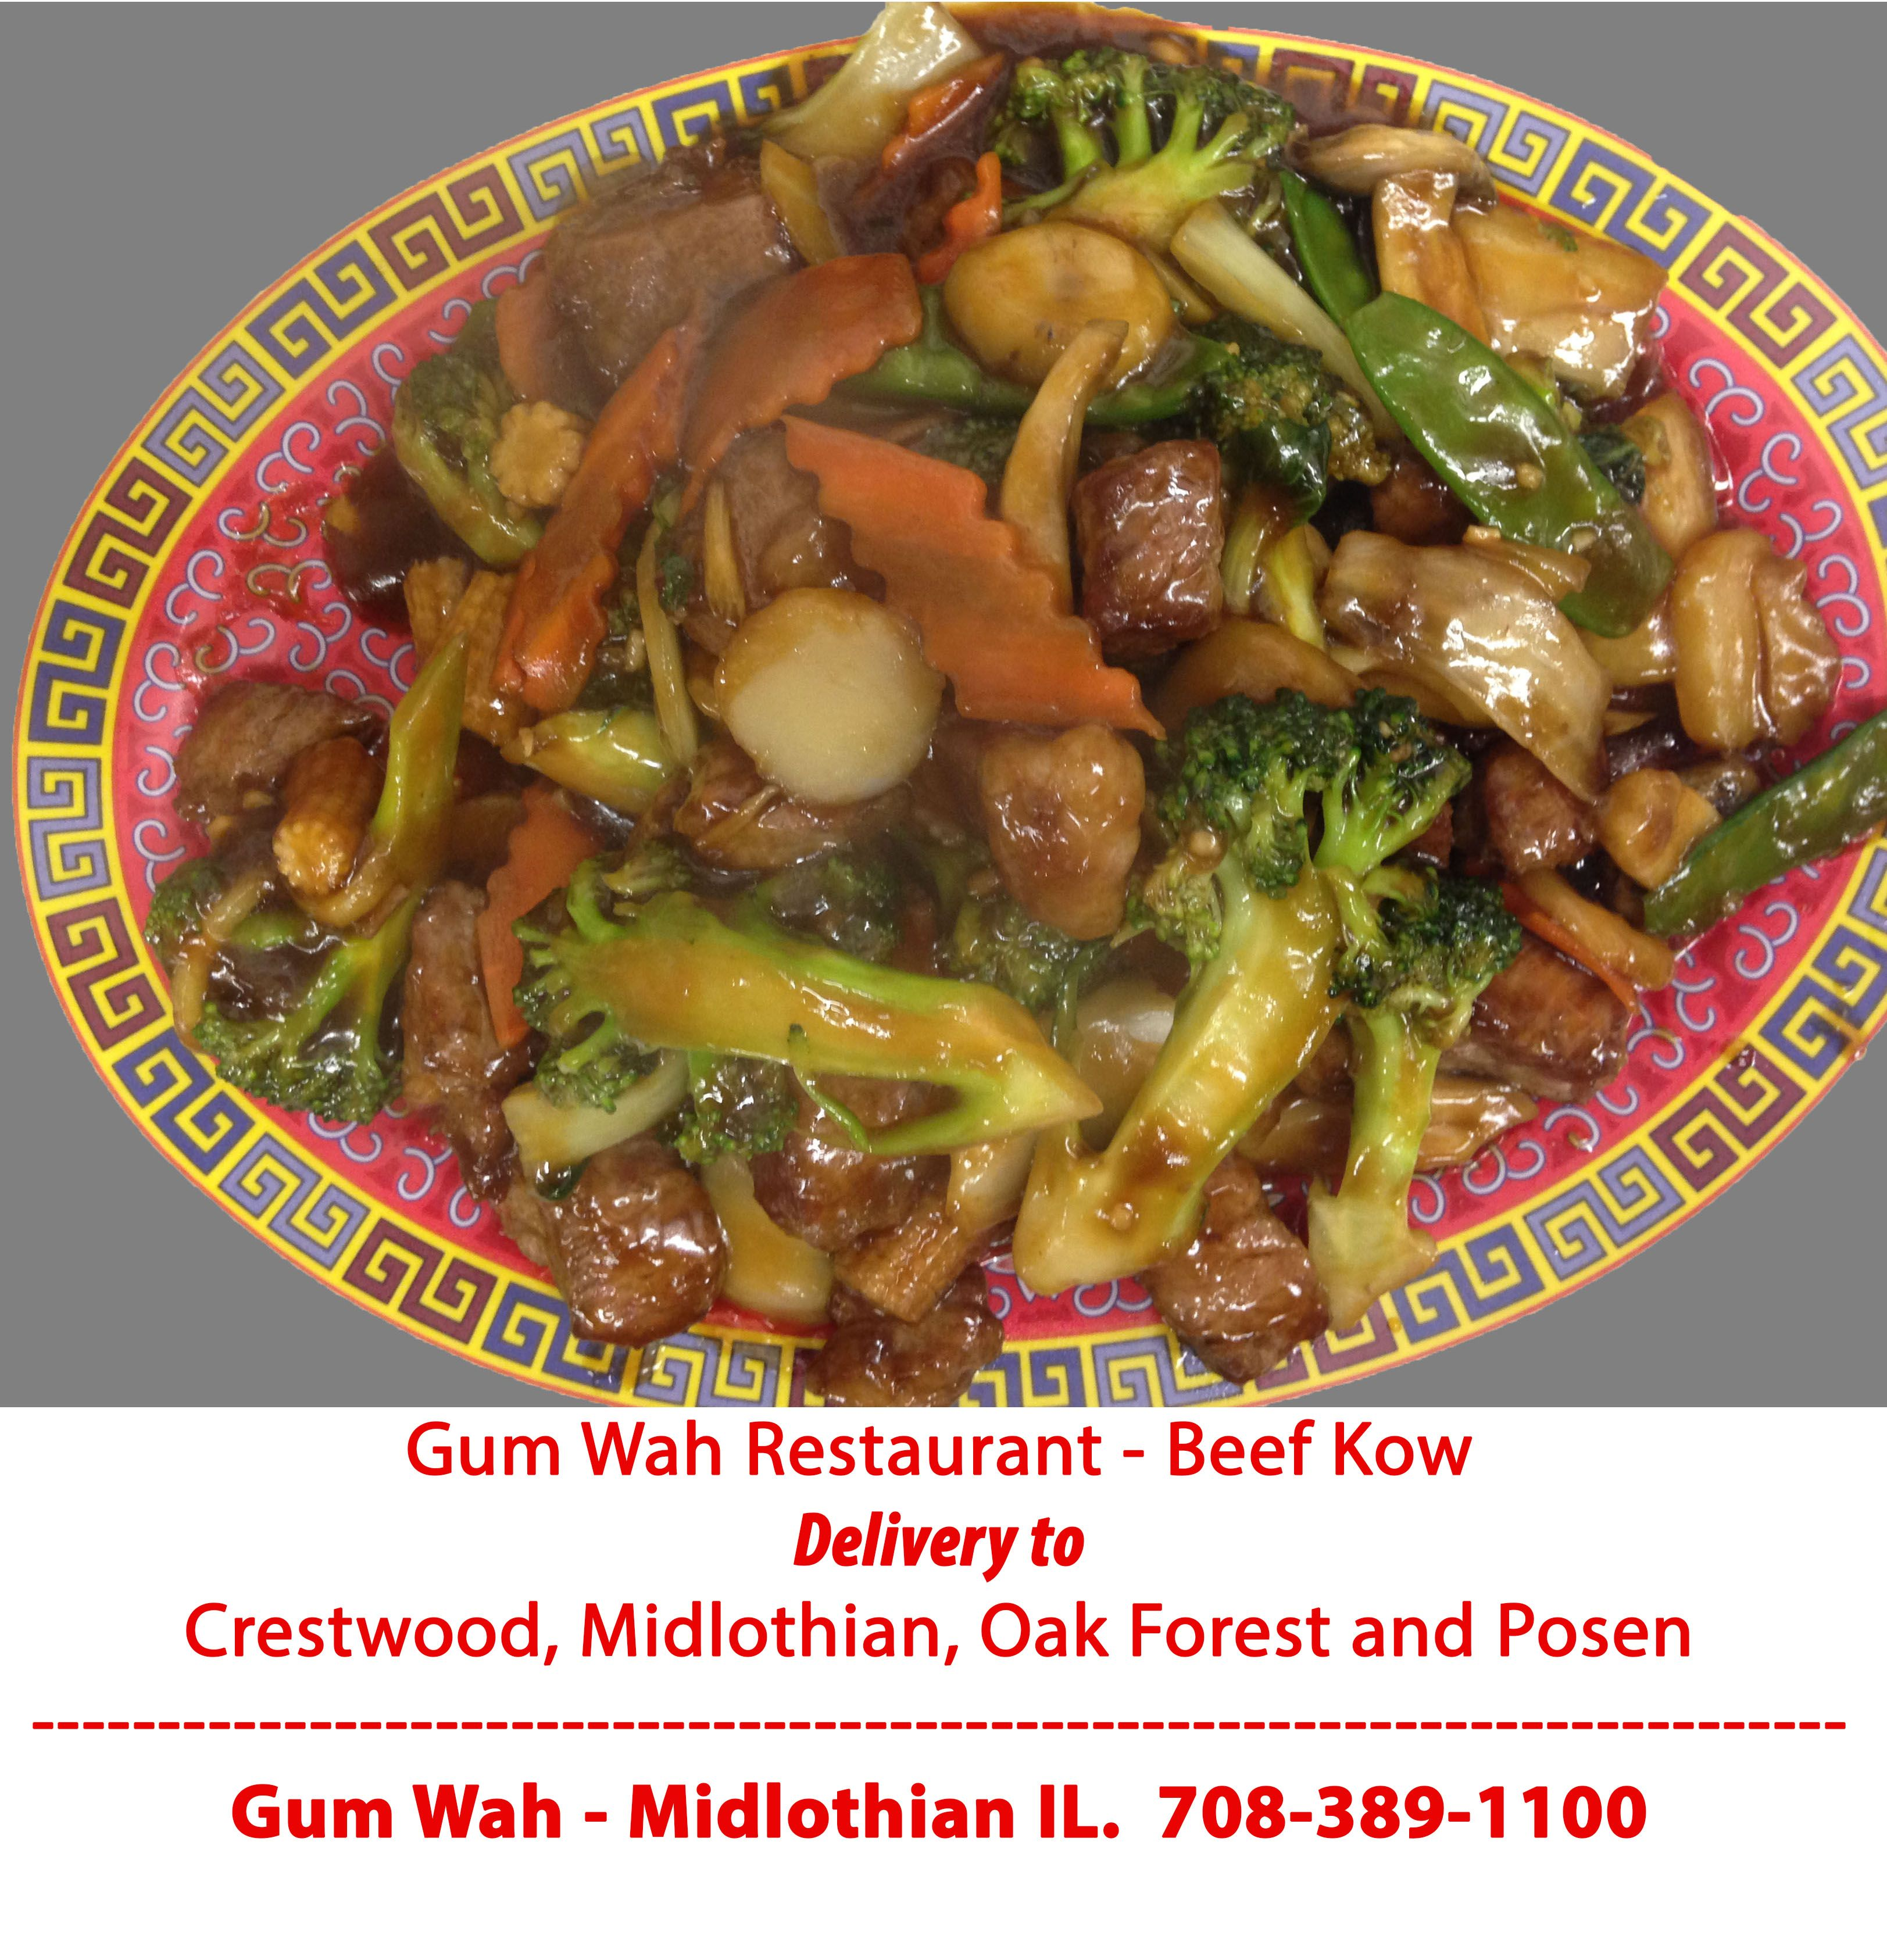 Welcome To Gum Wah Restaurant Midlothian Illinois Best Chinese Food Chinese Food Restaurant Chinese Dishes Recipes